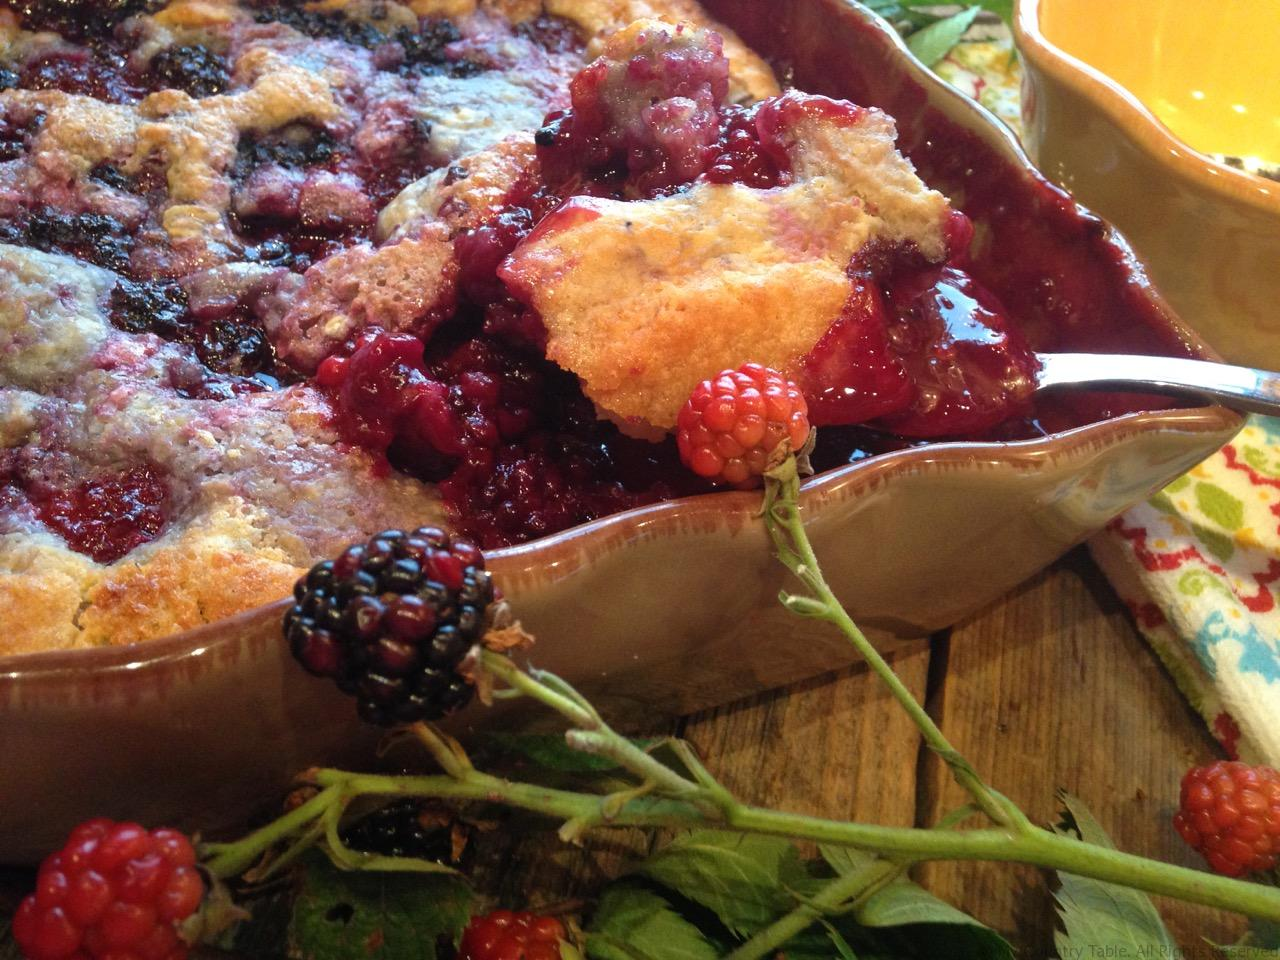 Soft Crust Blackberry Cobbler - My Country Table